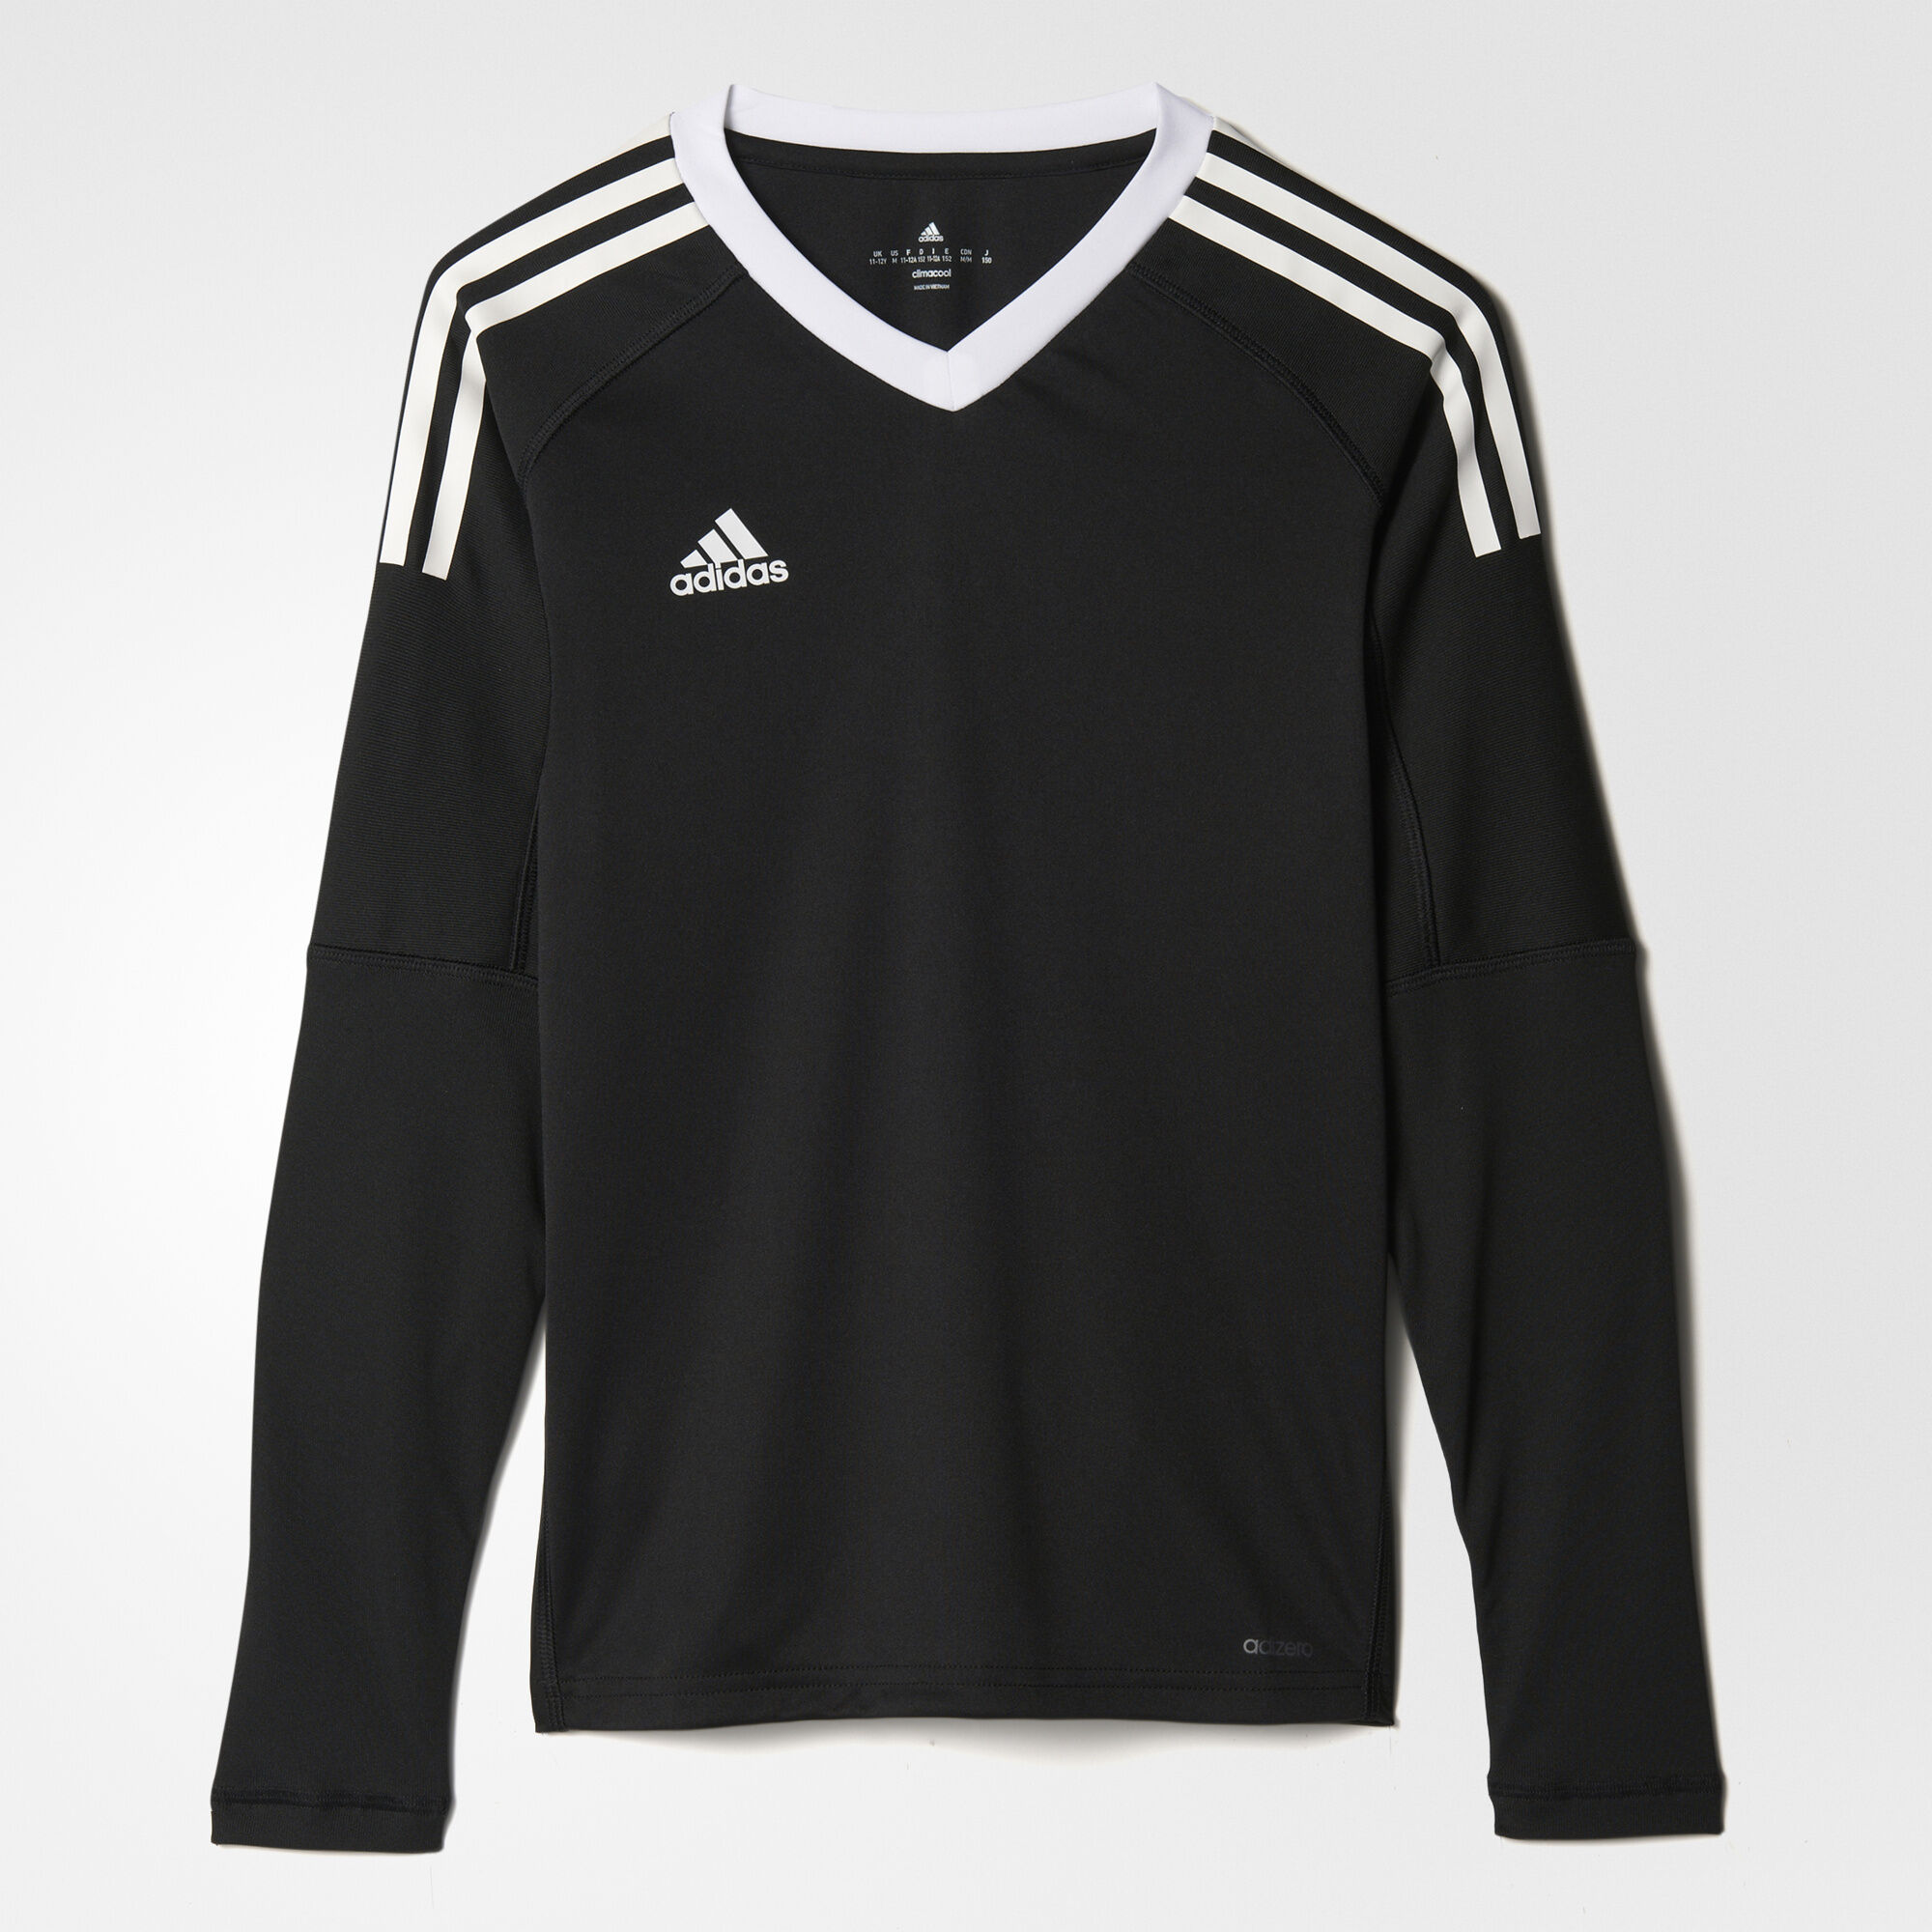 adidas revigo 17 goalkeeper jersey black adidas mlt. Black Bedroom Furniture Sets. Home Design Ideas